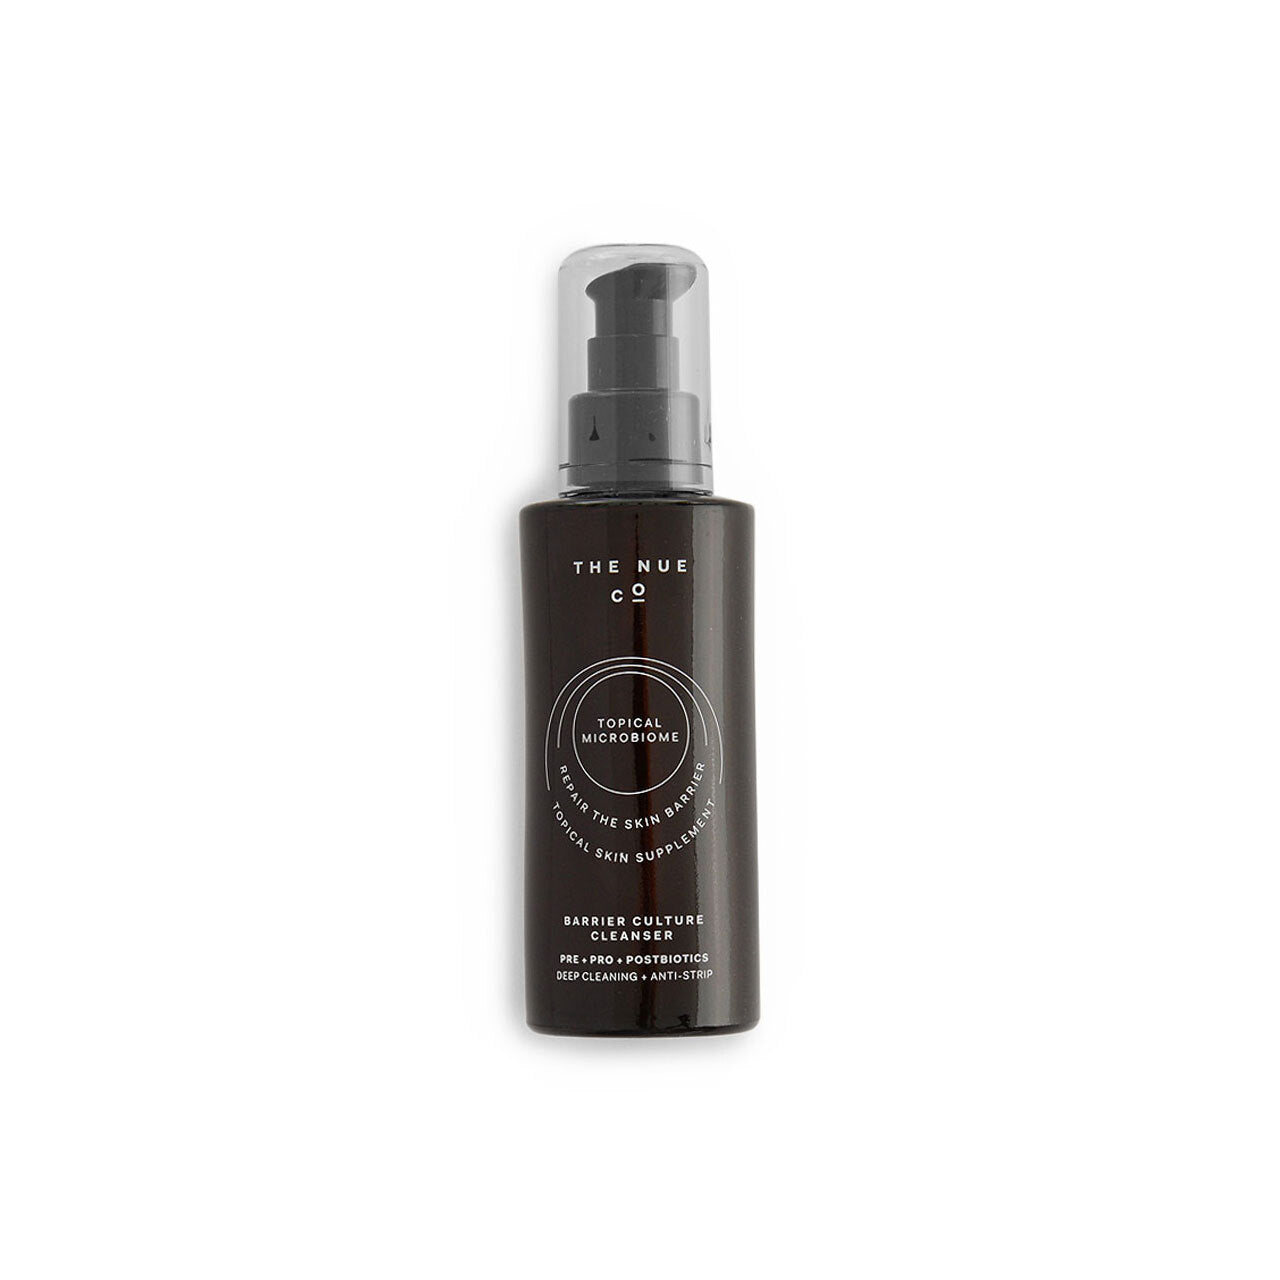 The Nue Co. Barrier Culture Cleanser